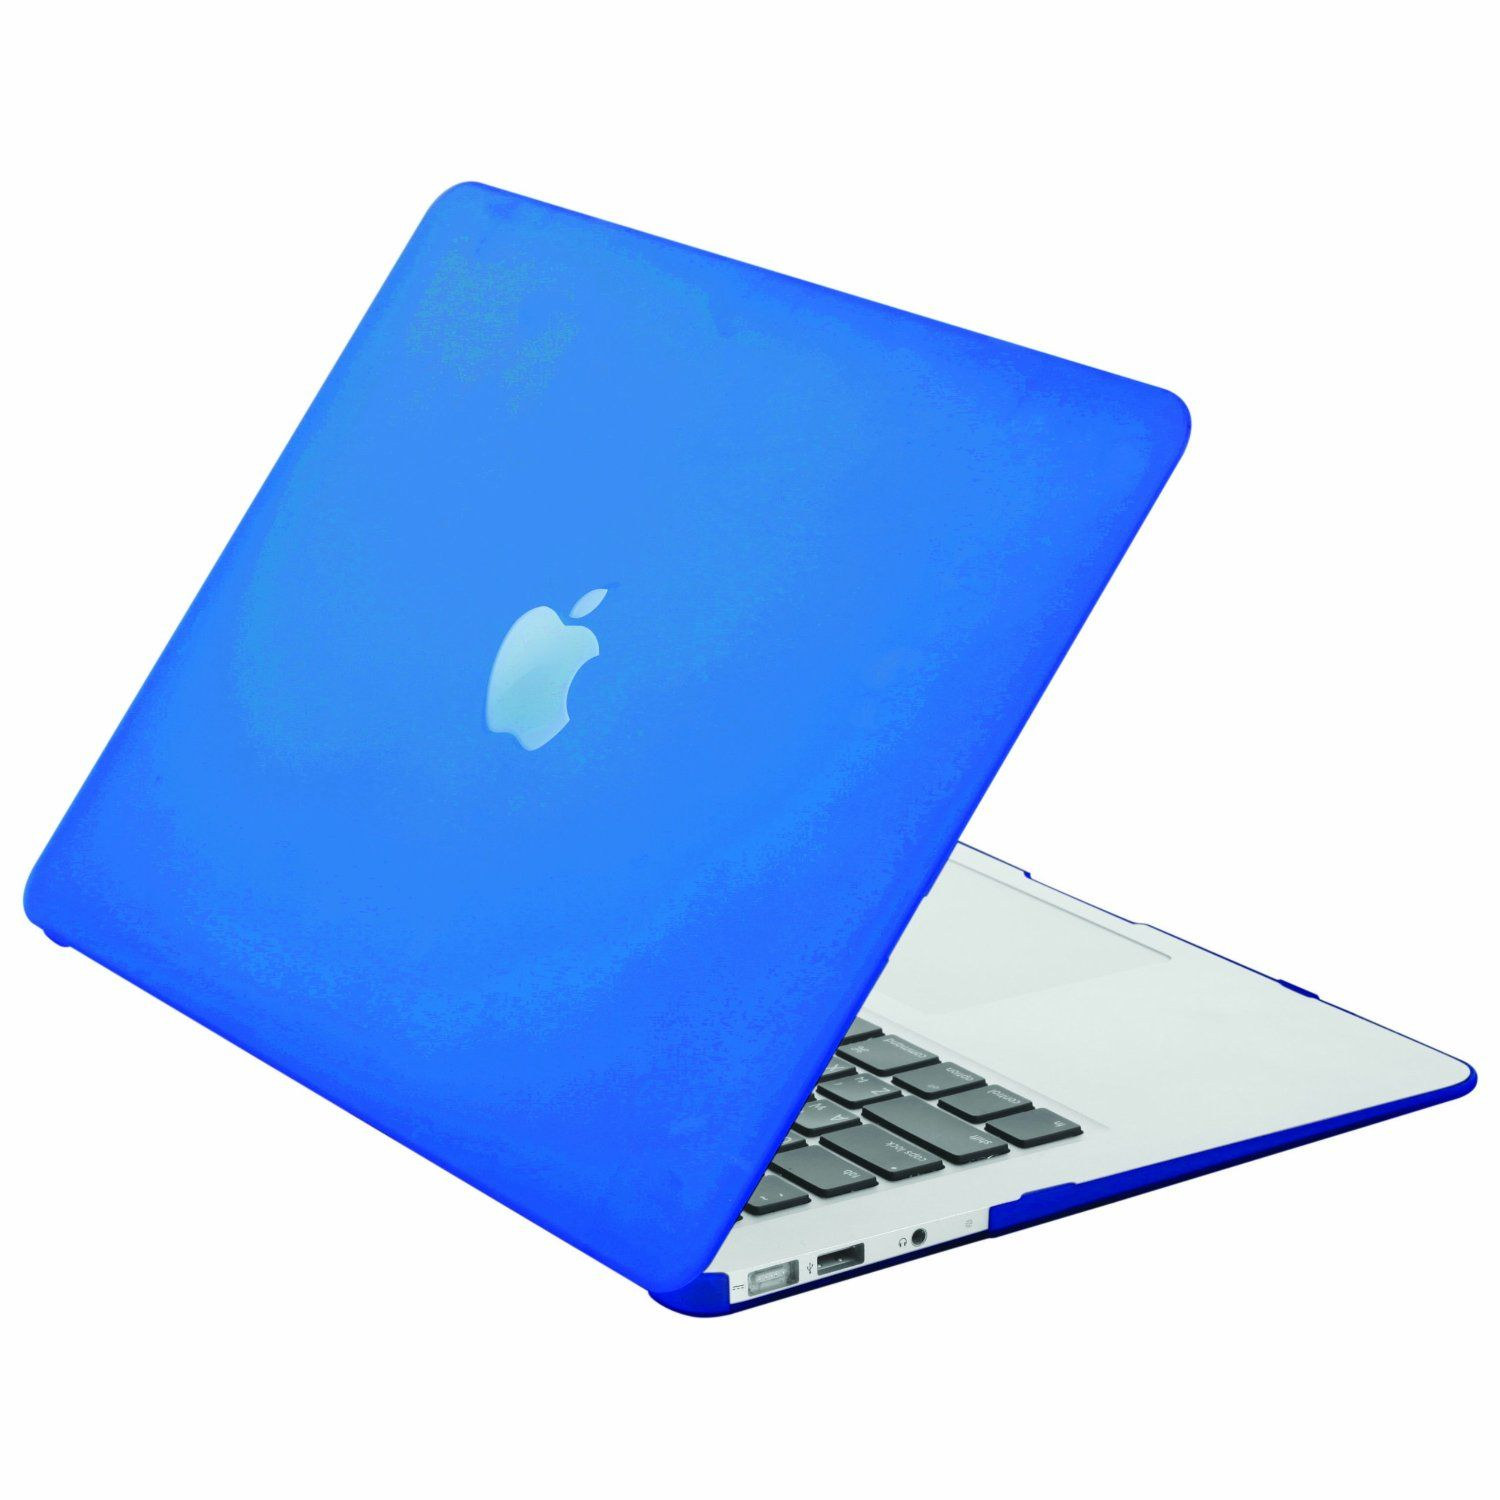 Blue Apple laptop. By the end of this semester I would ...